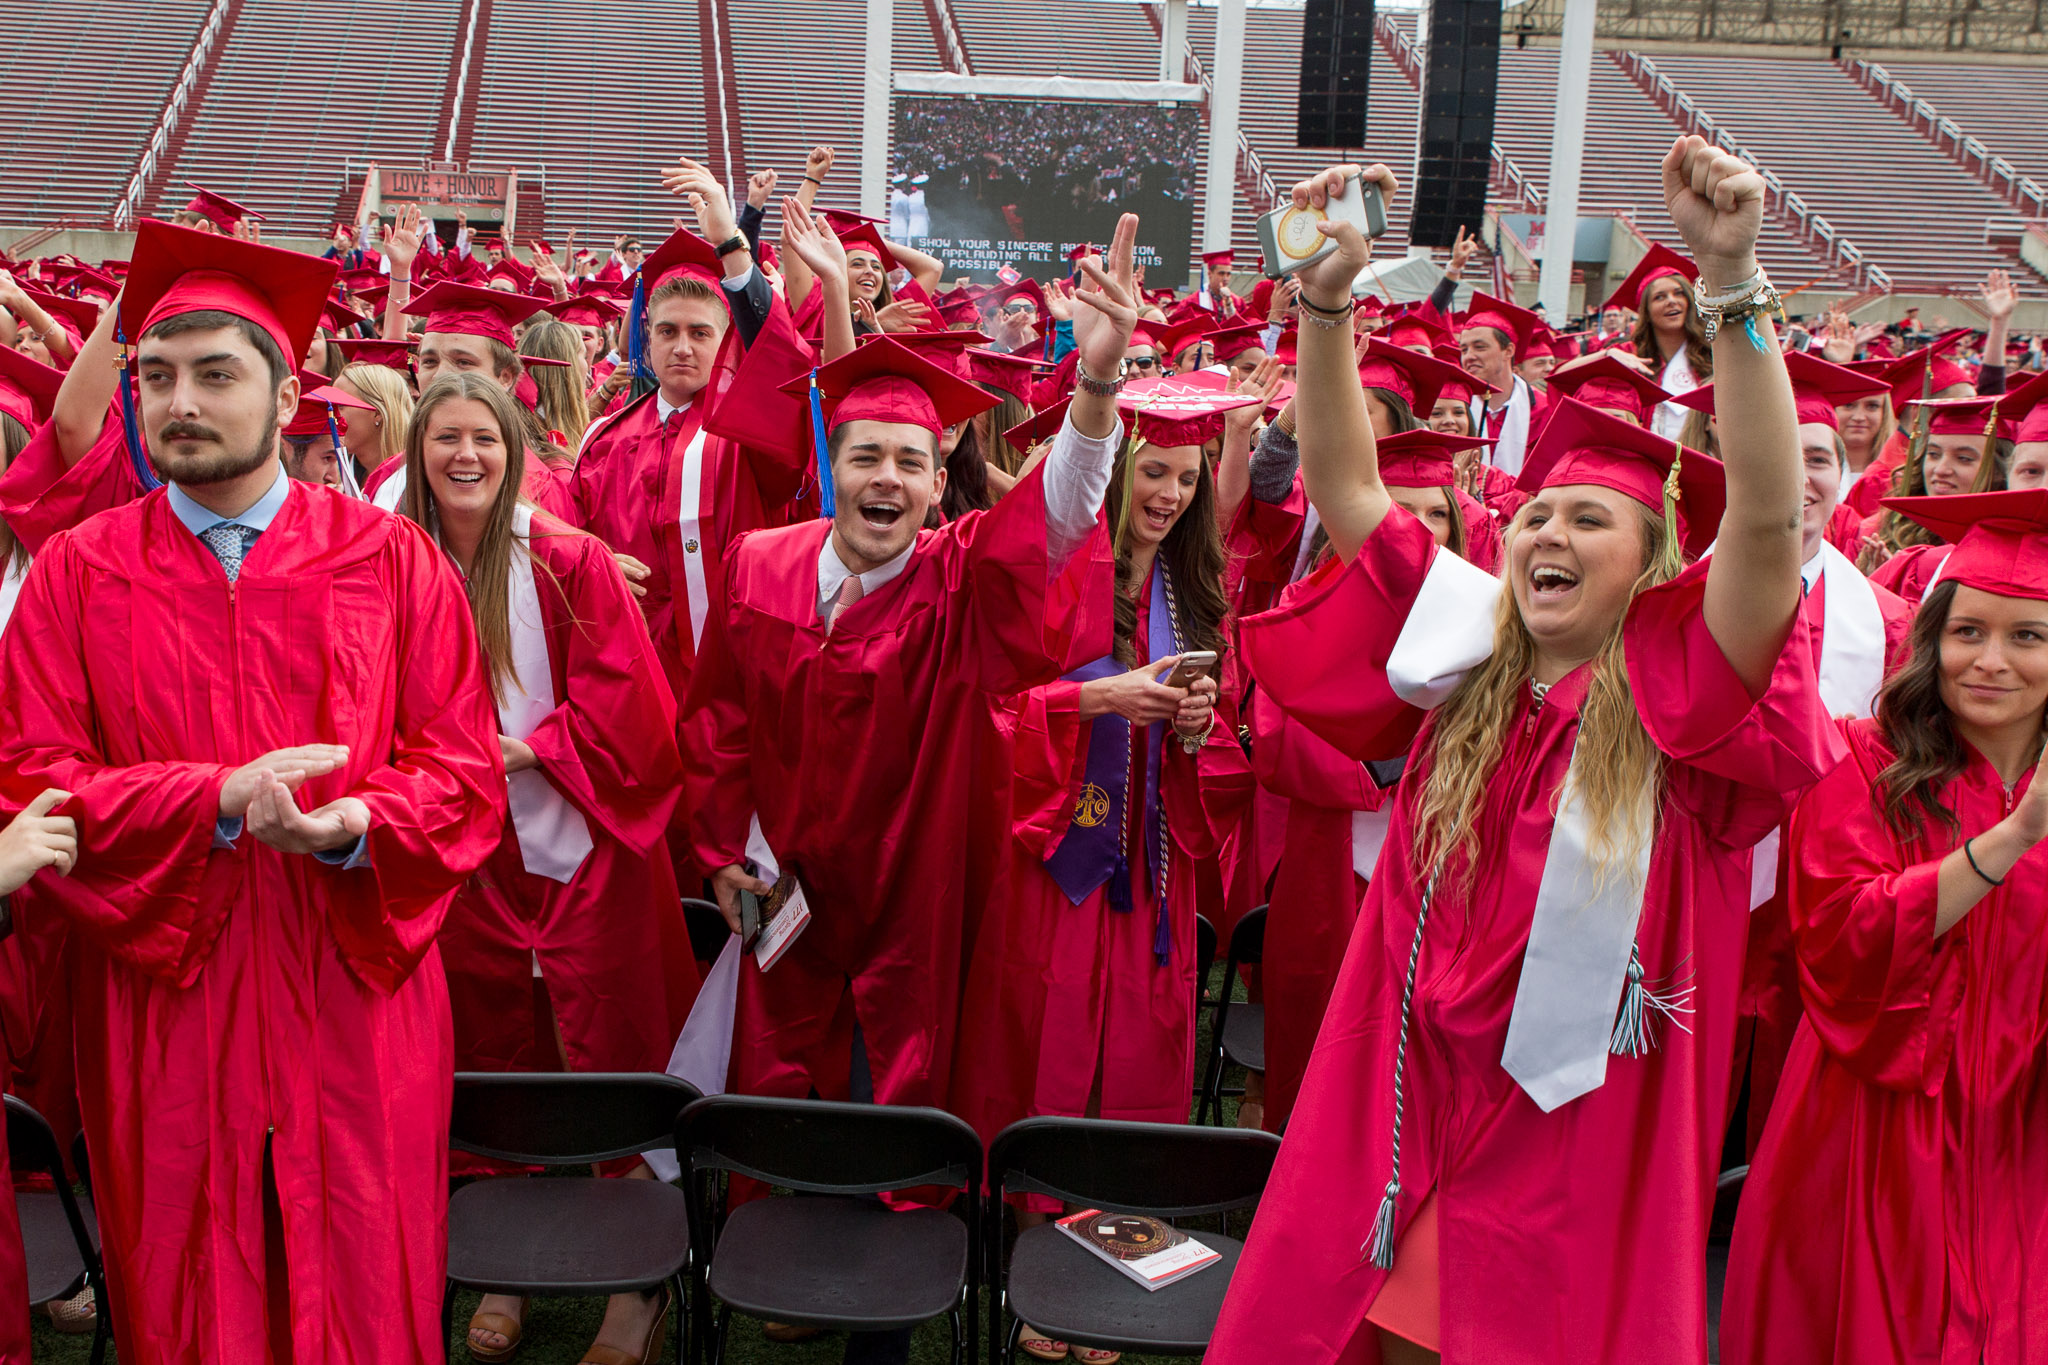 J4816 2016 Spring Commencement Yager Stadium